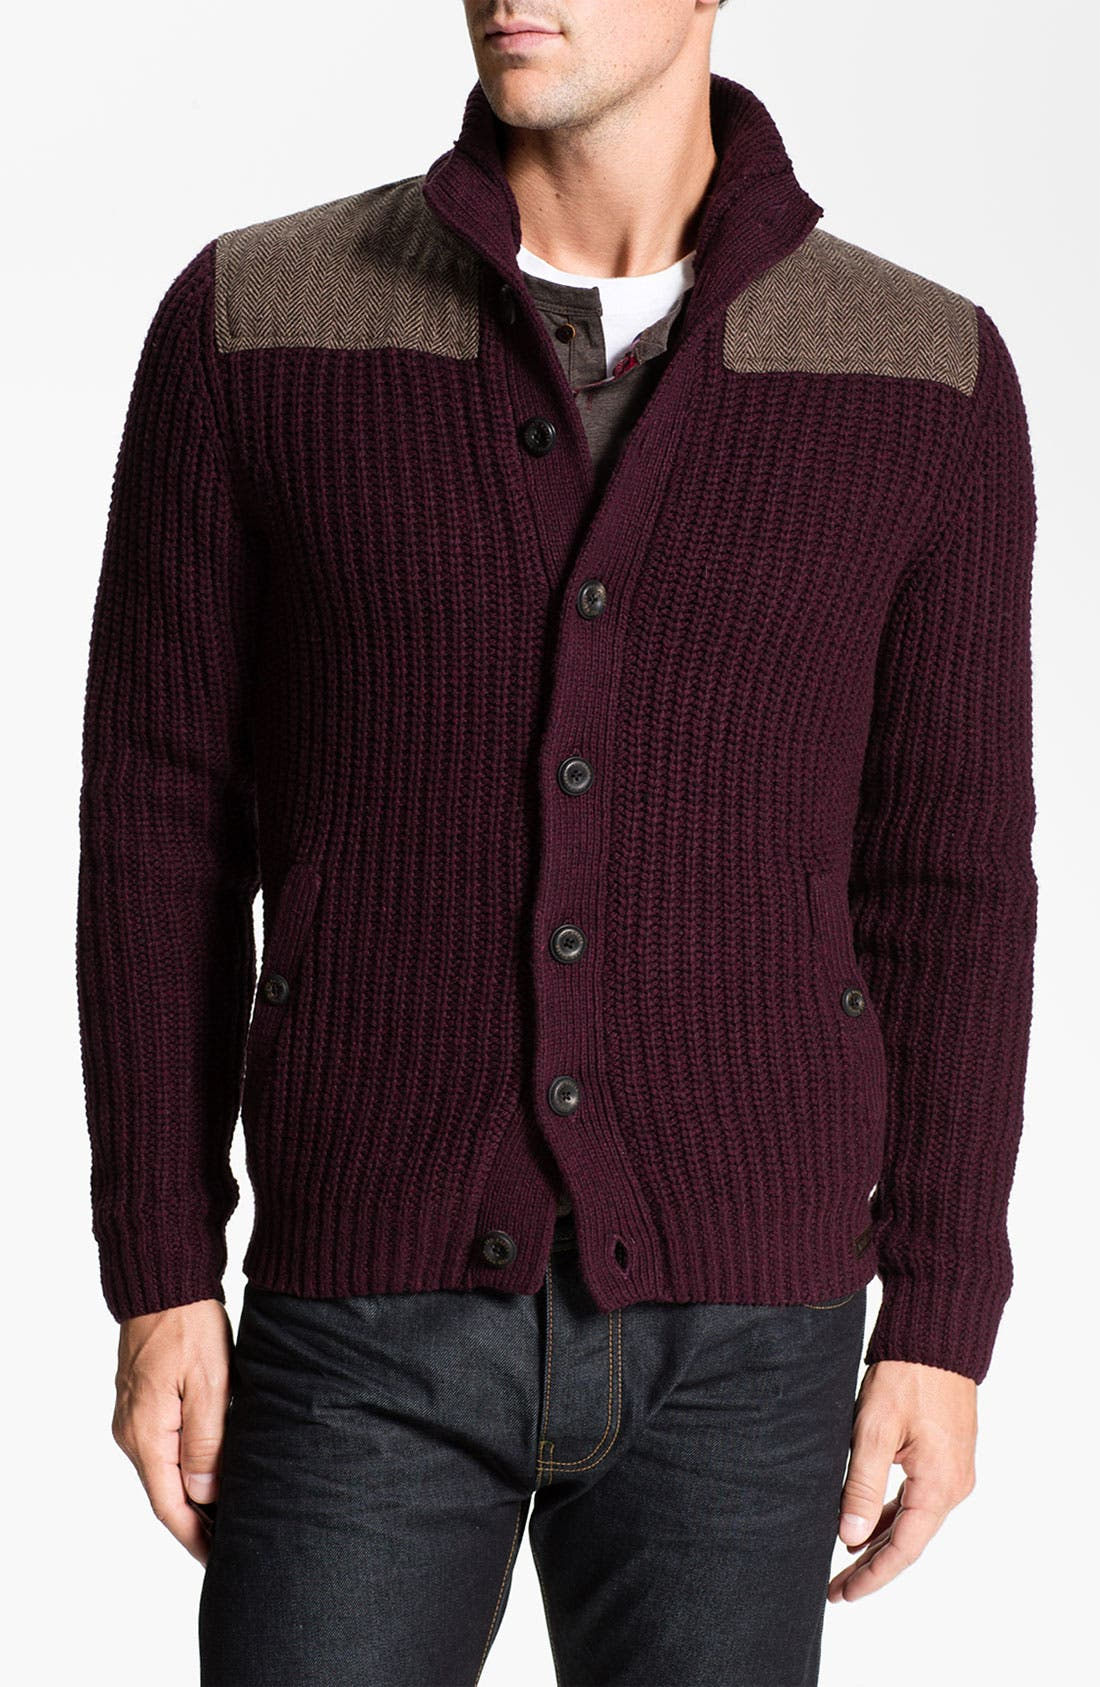 Alternate Image 1 Selected - Ted Baker London 'Princiz' Knit Cardigan